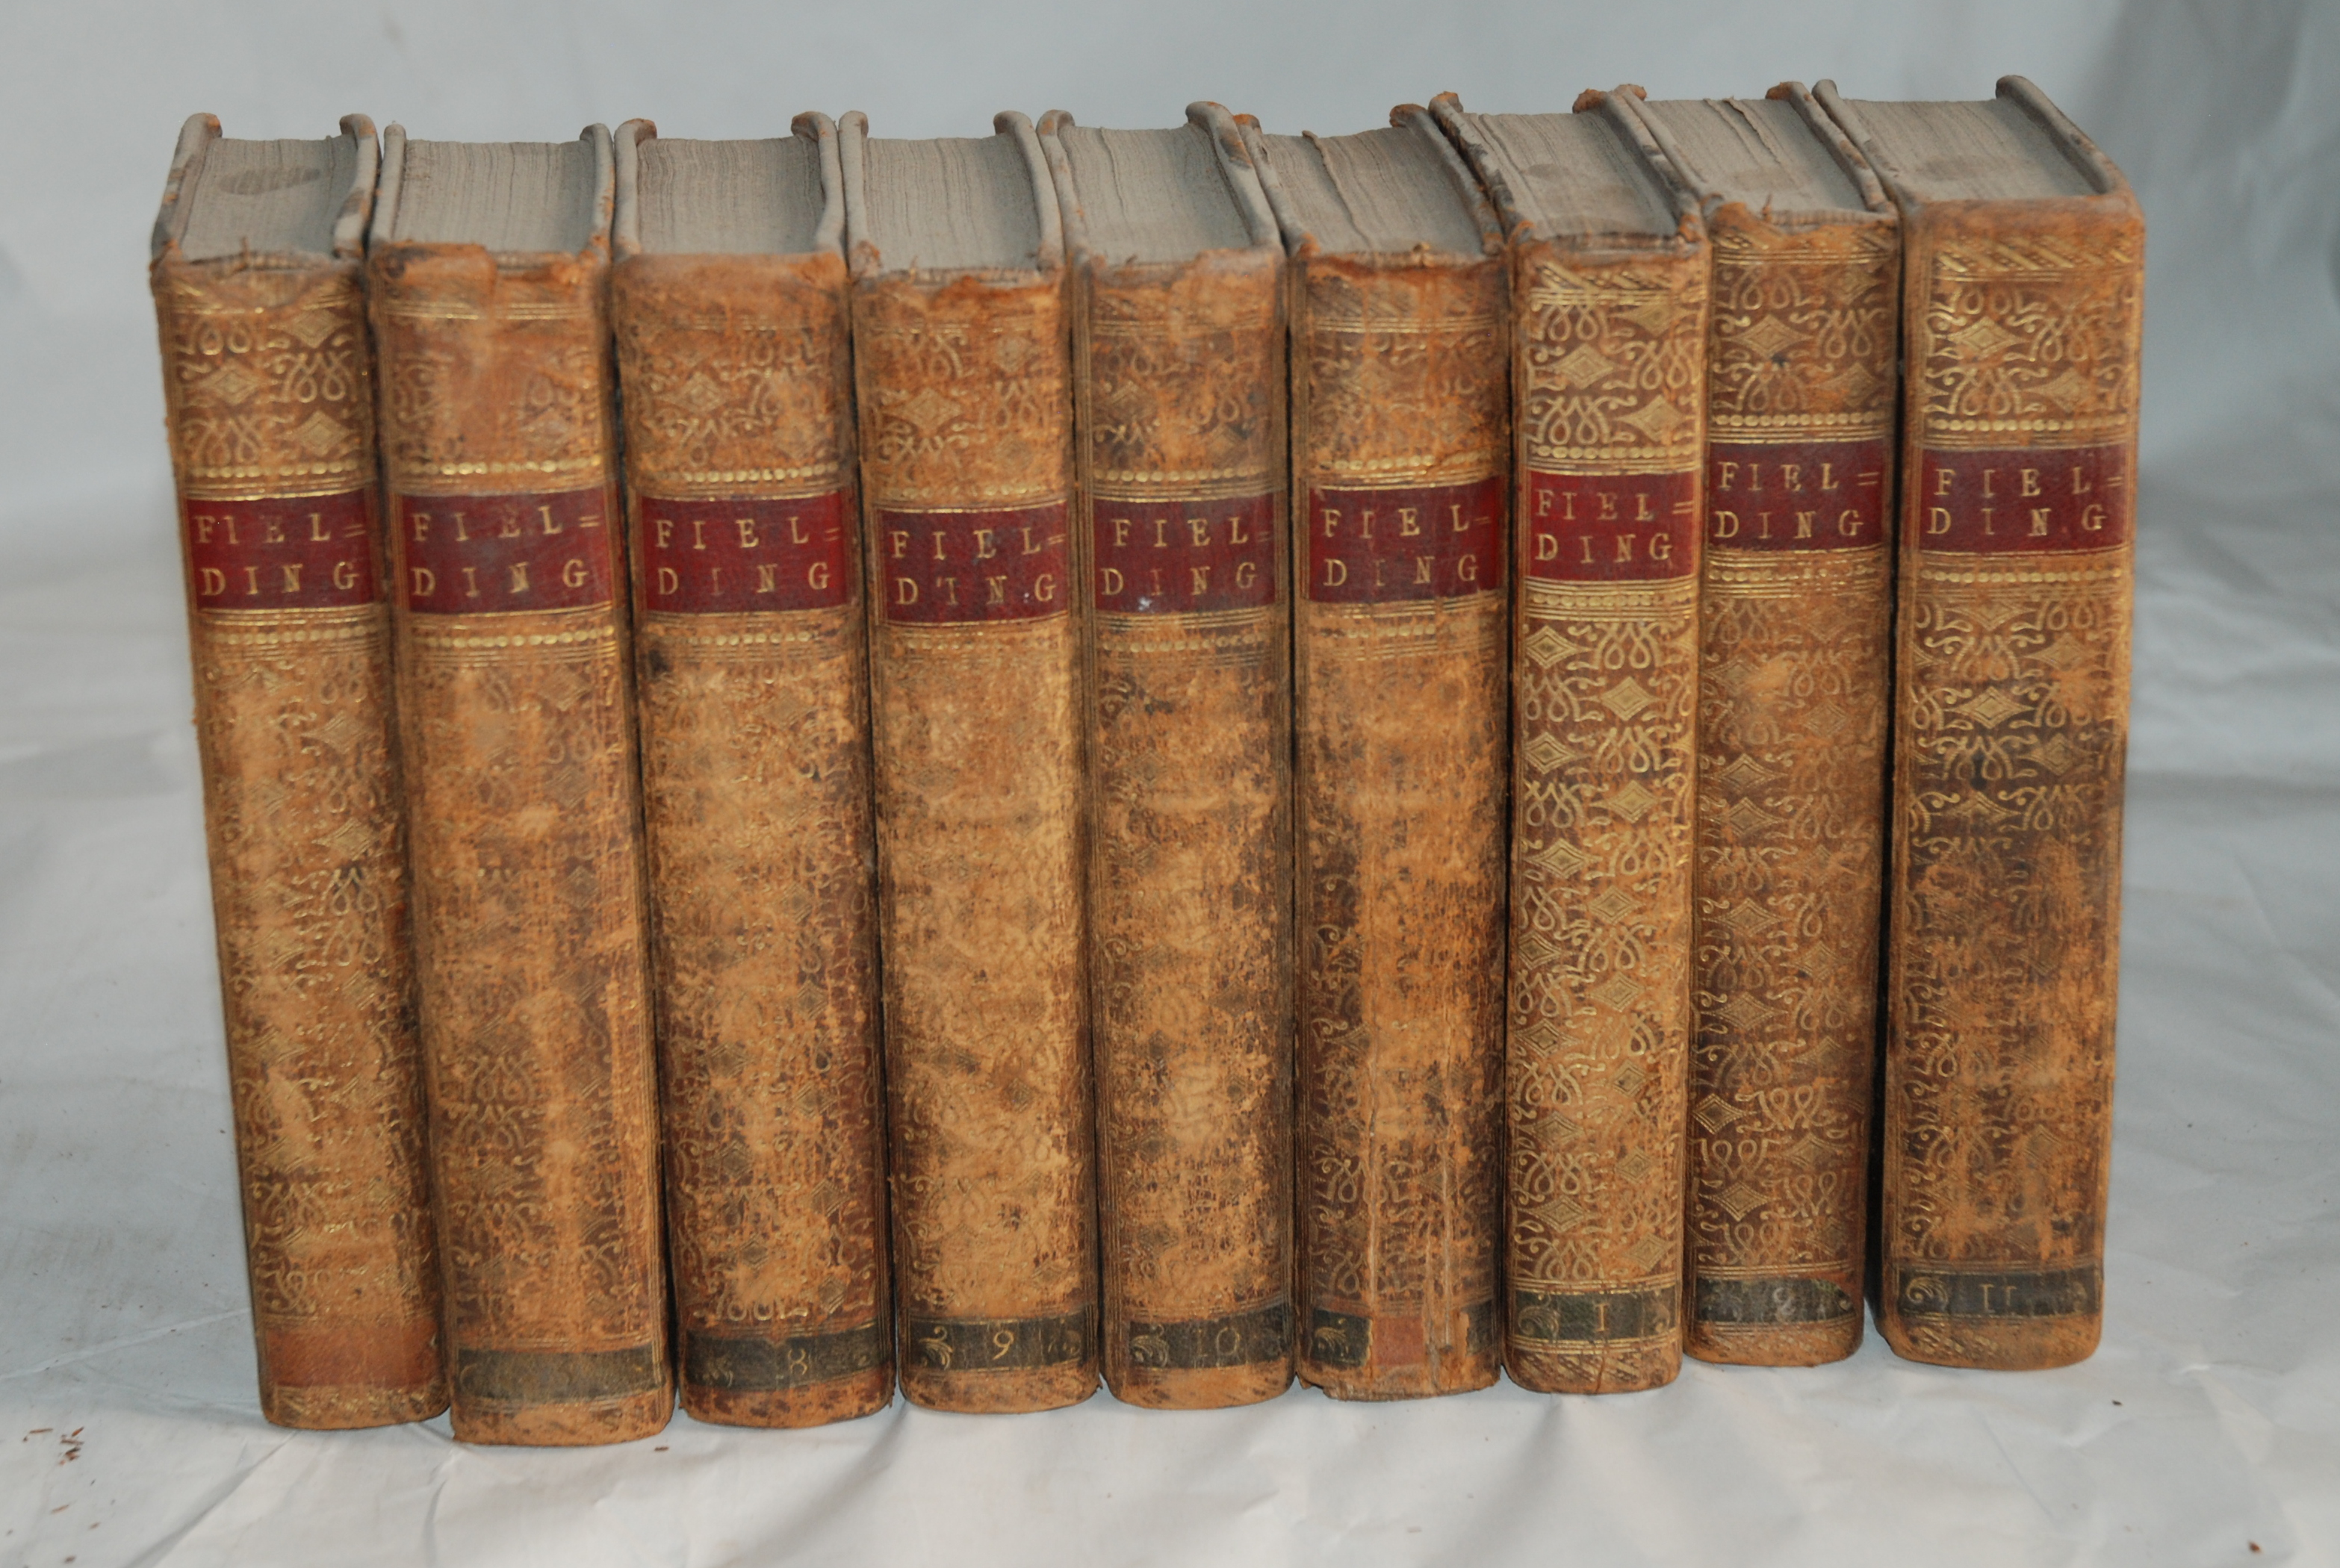 BOSWELLS LIFE OF JOHNSON 3 vols, London, 1824, The works of Henry Fielding, 9 vols, Laurence Sterna, - Image 2 of 3